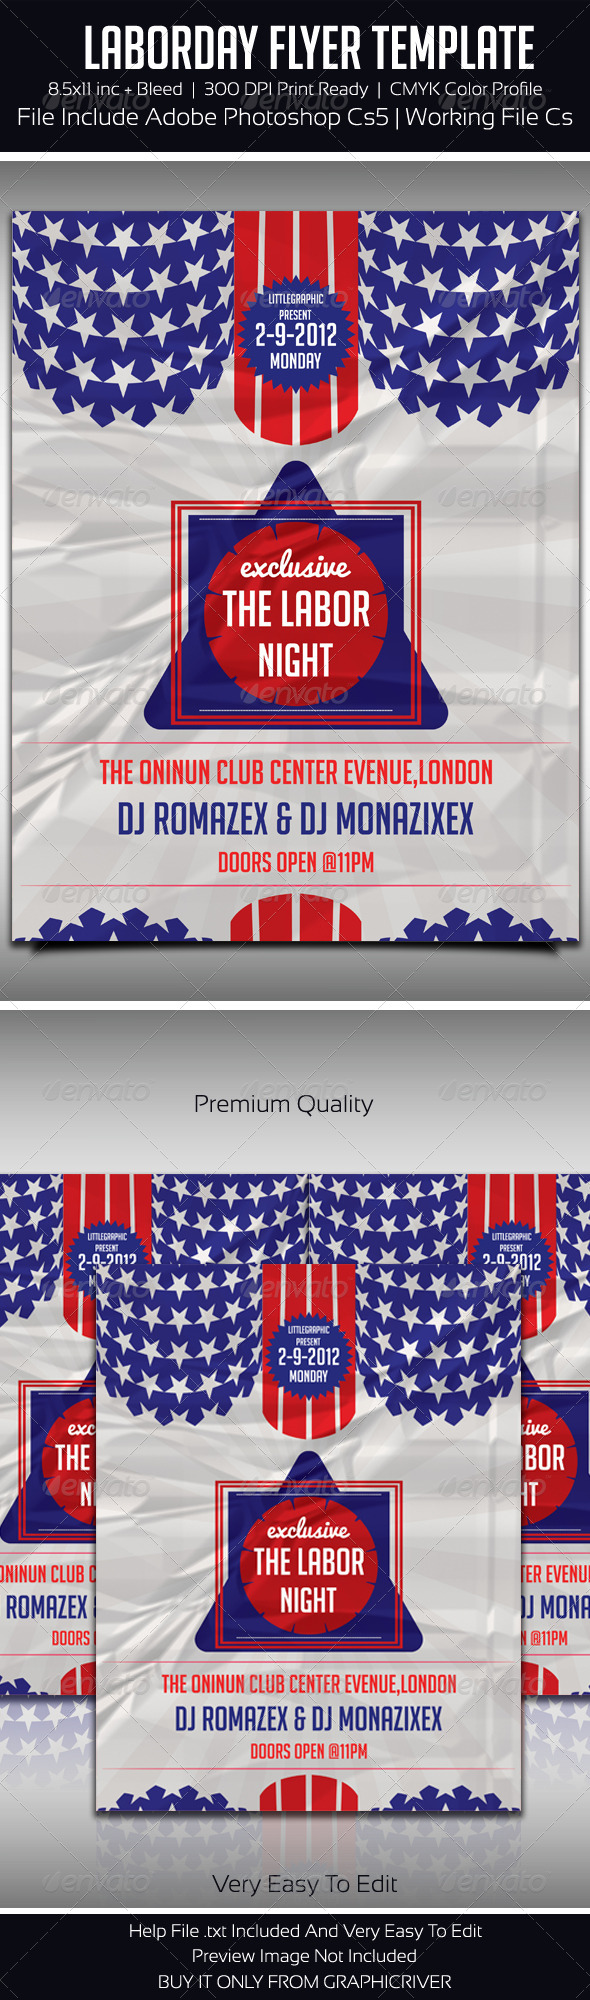 USA Labor Day Party Flyer Template - Flyers Print Templates